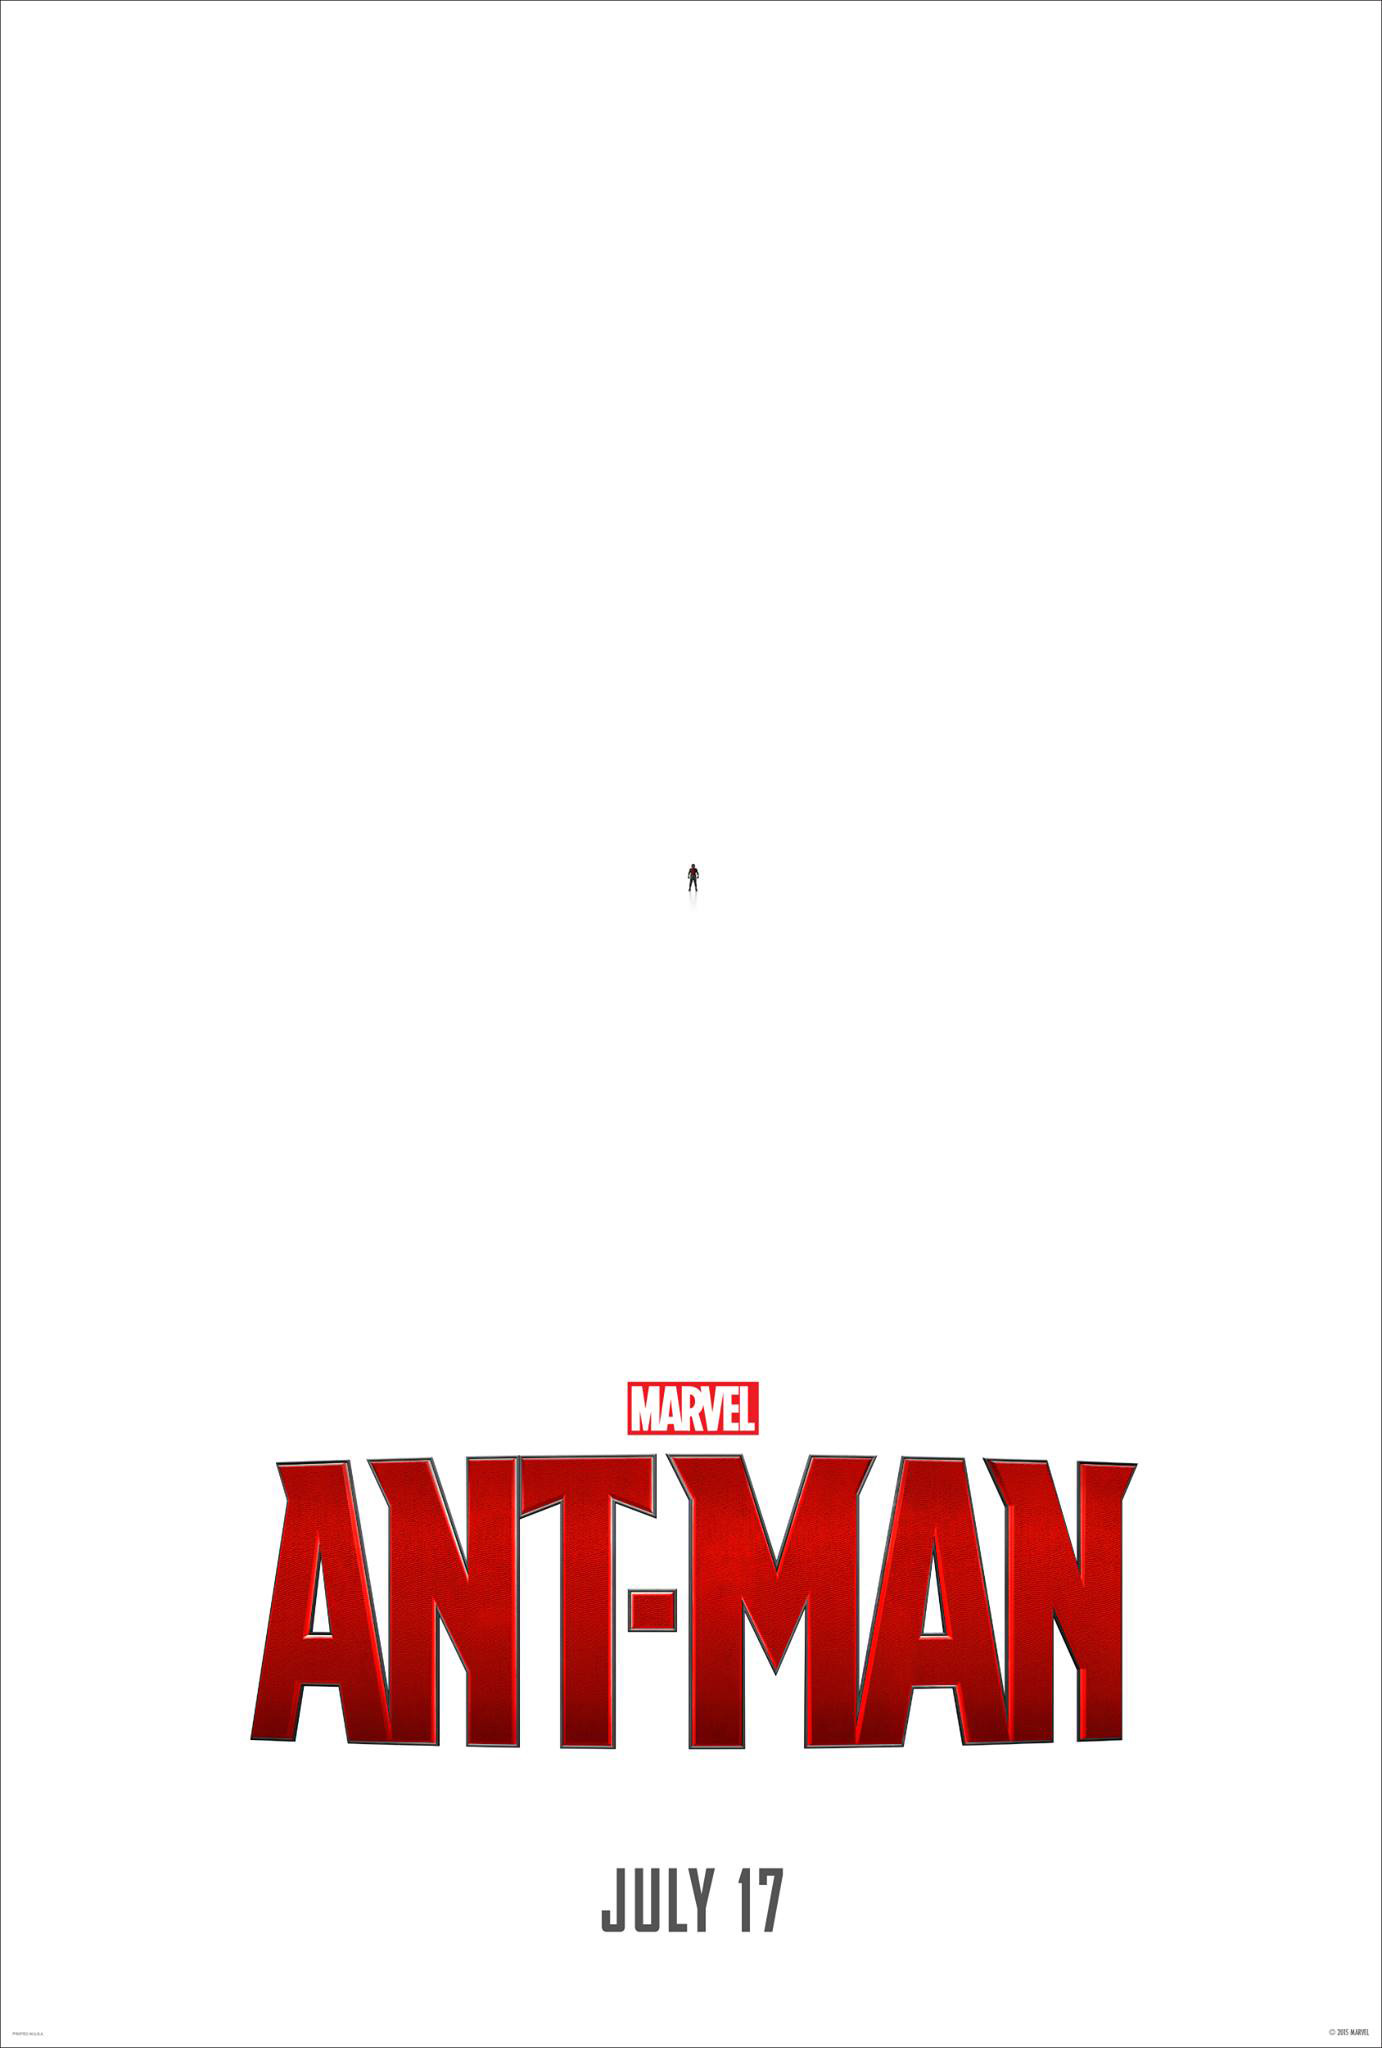 #7 Ant-Man (Marvel/Disney)